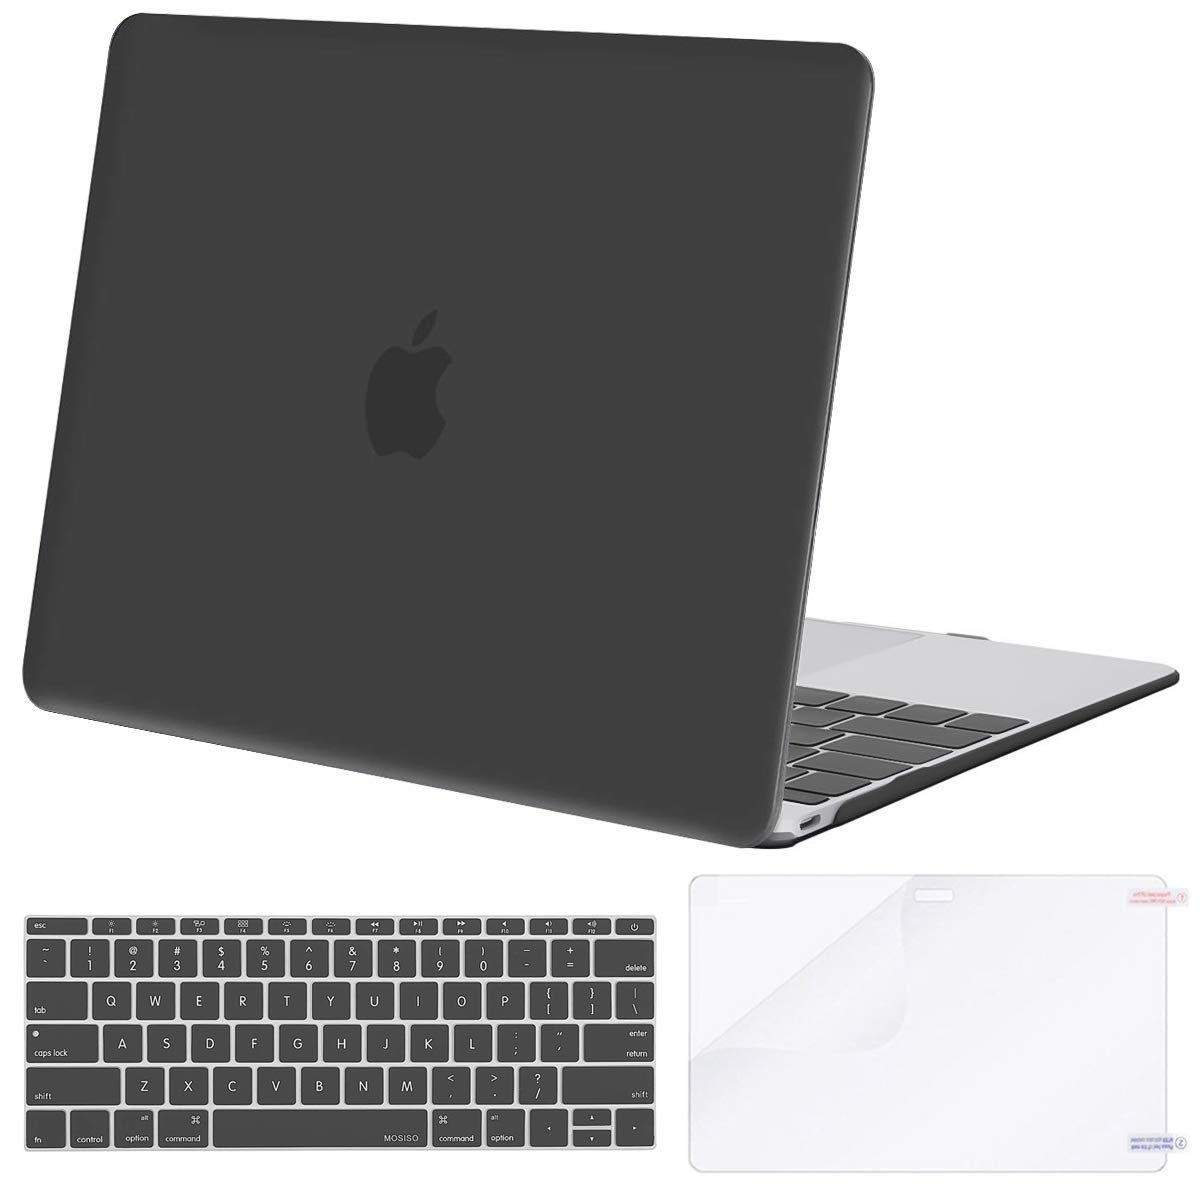 MOSISO Plastic Hard Shell Case & Keyboard Cover Skin & Screen Protector Compatible with MacBook 12 inch with Retina Display (Model A1534, Release 2017 2016 2015), Space Gray